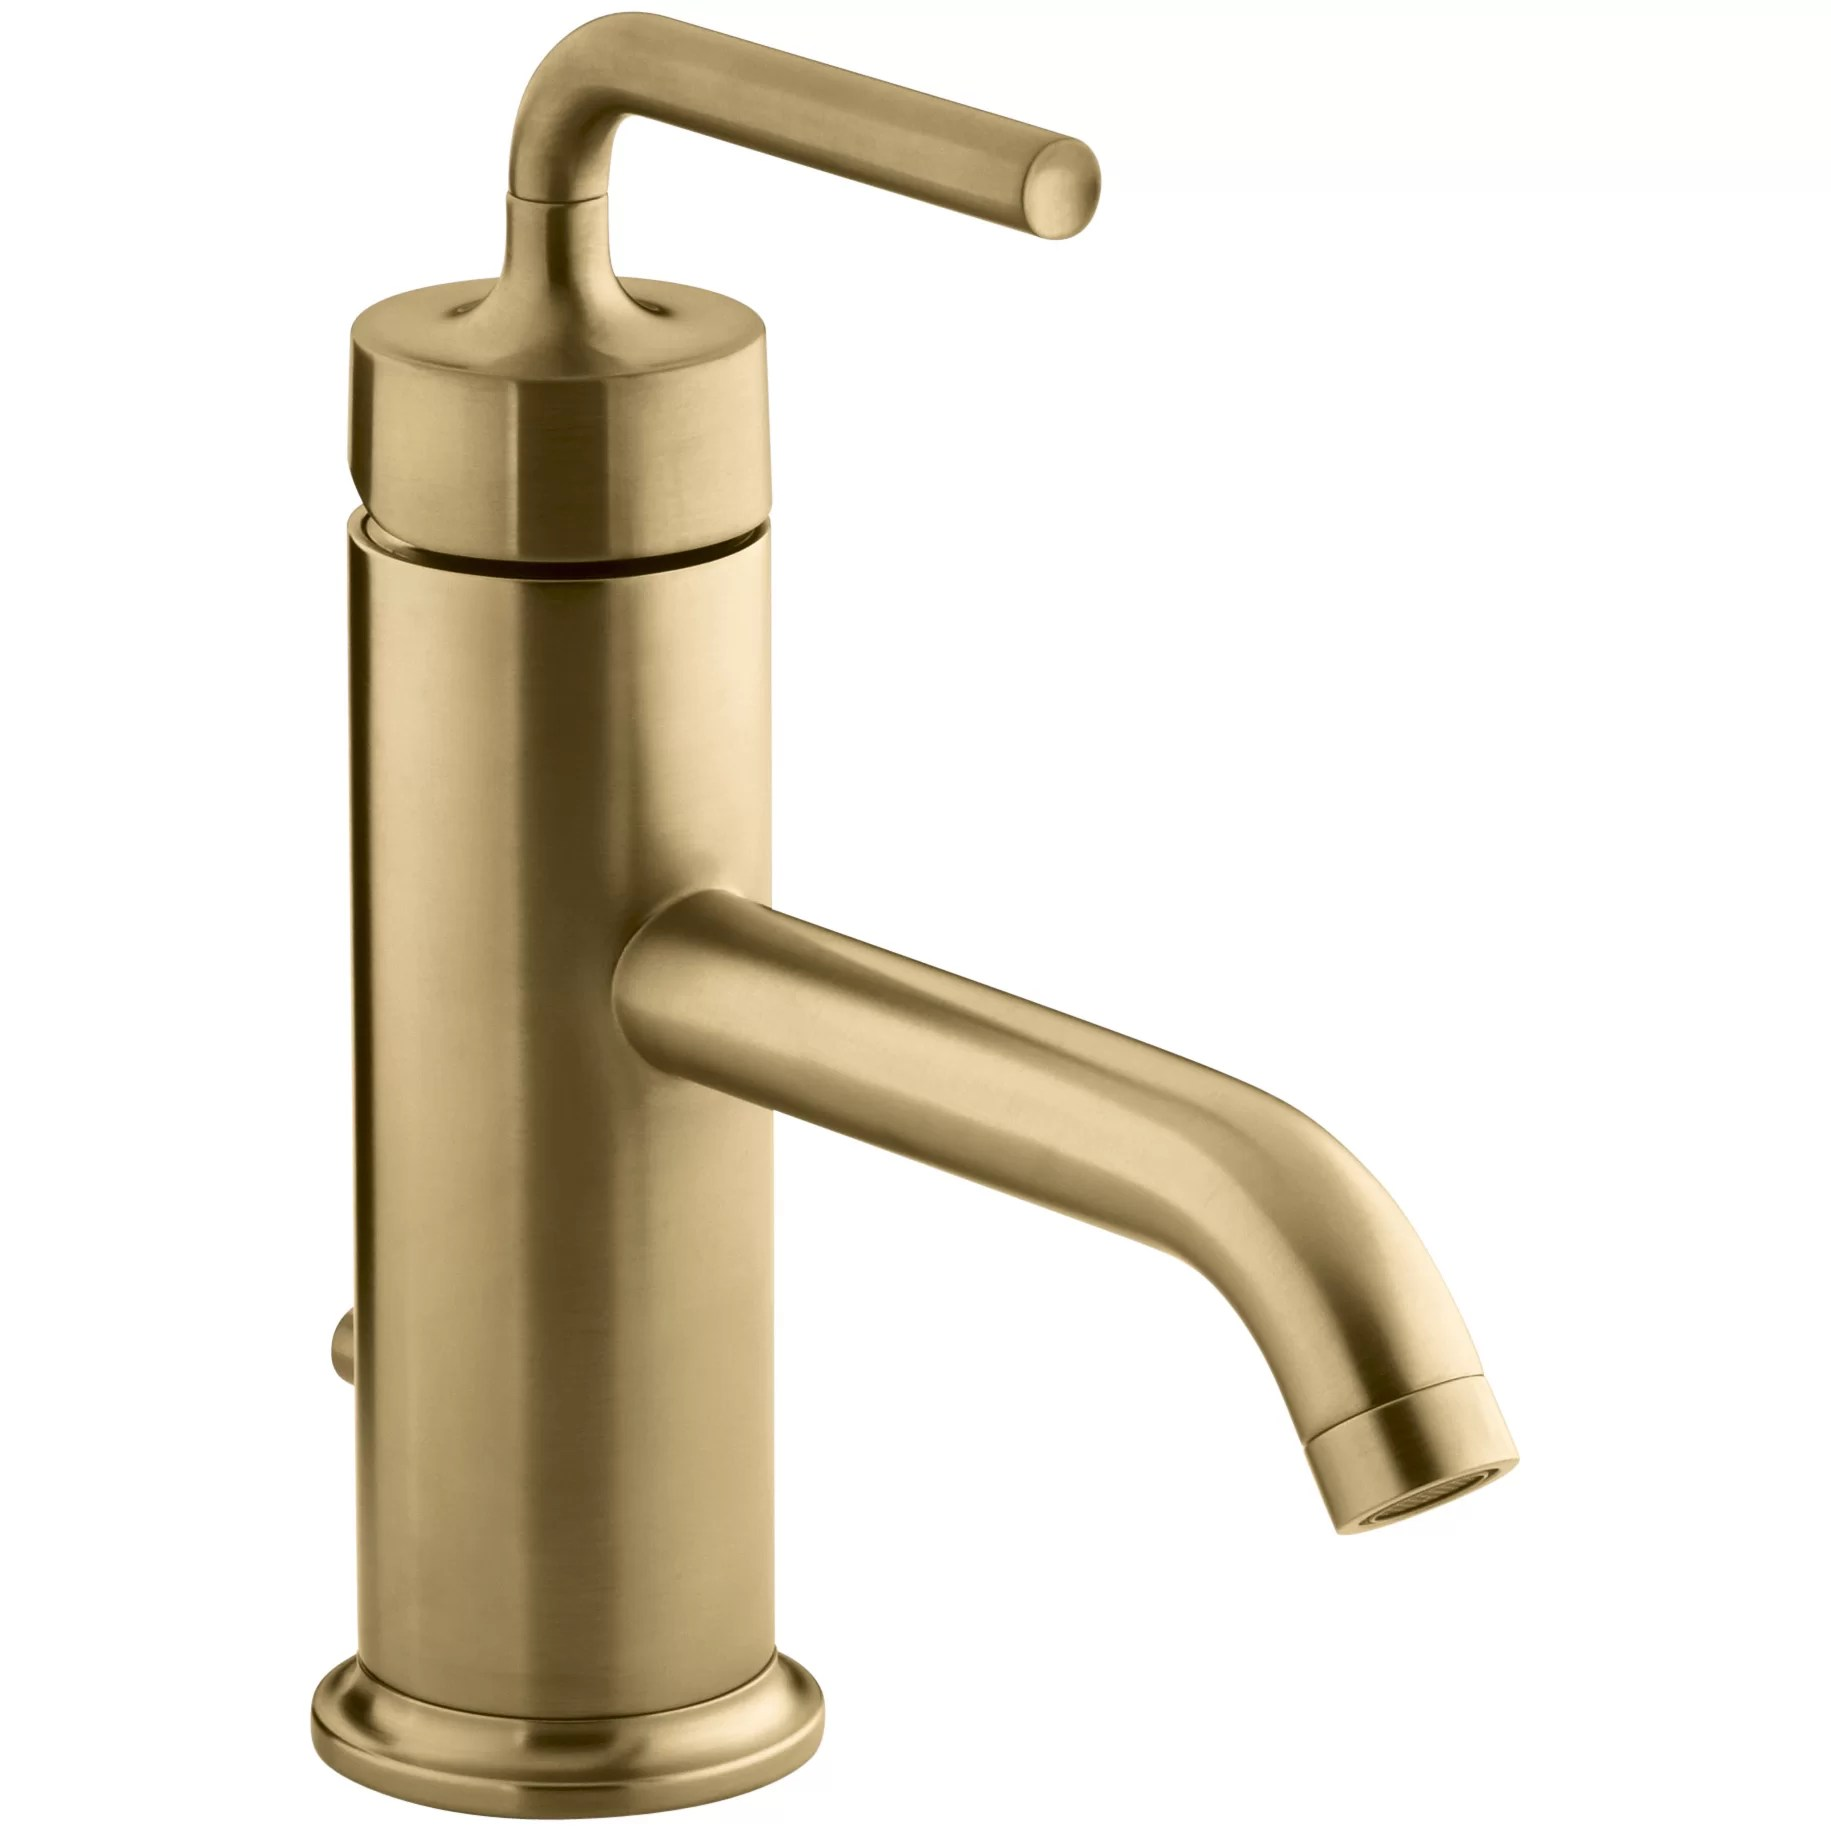 Kohler Purist SingleHole Bathroom Sink Faucet with Straight Lever Handle  Reviews  Wayfair